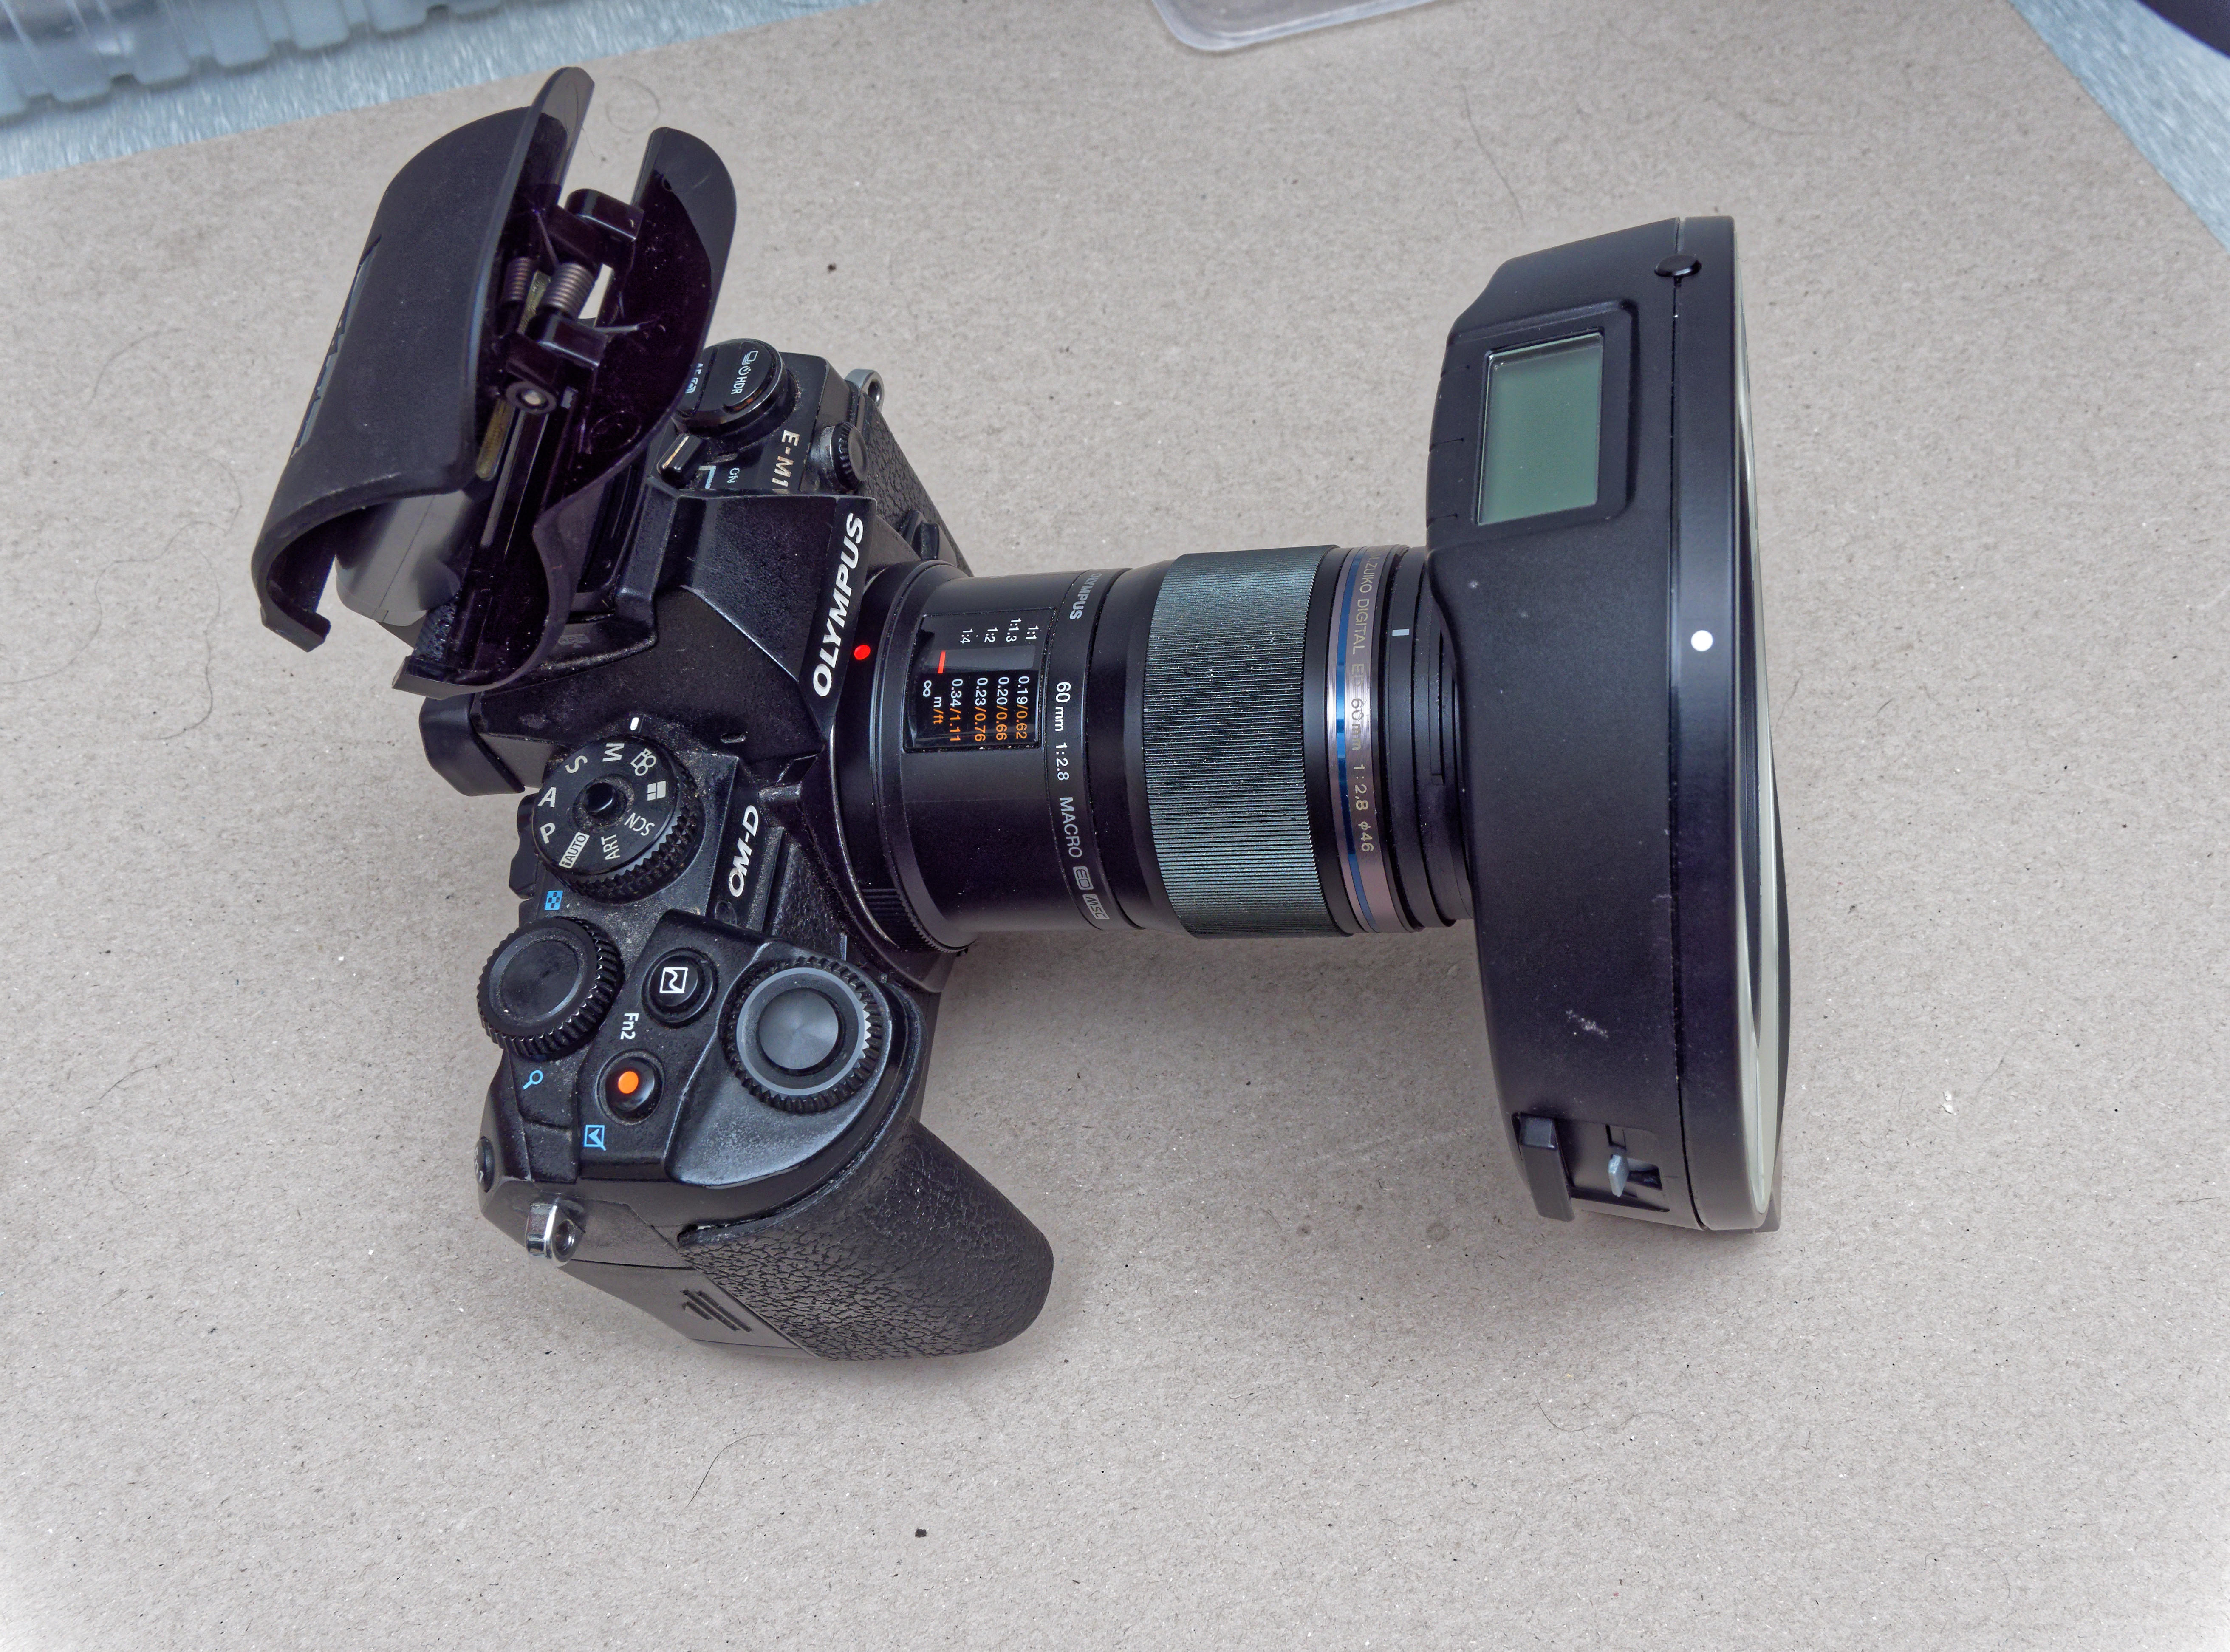 This should be E-M1-3.jpeg.  Is it missing?